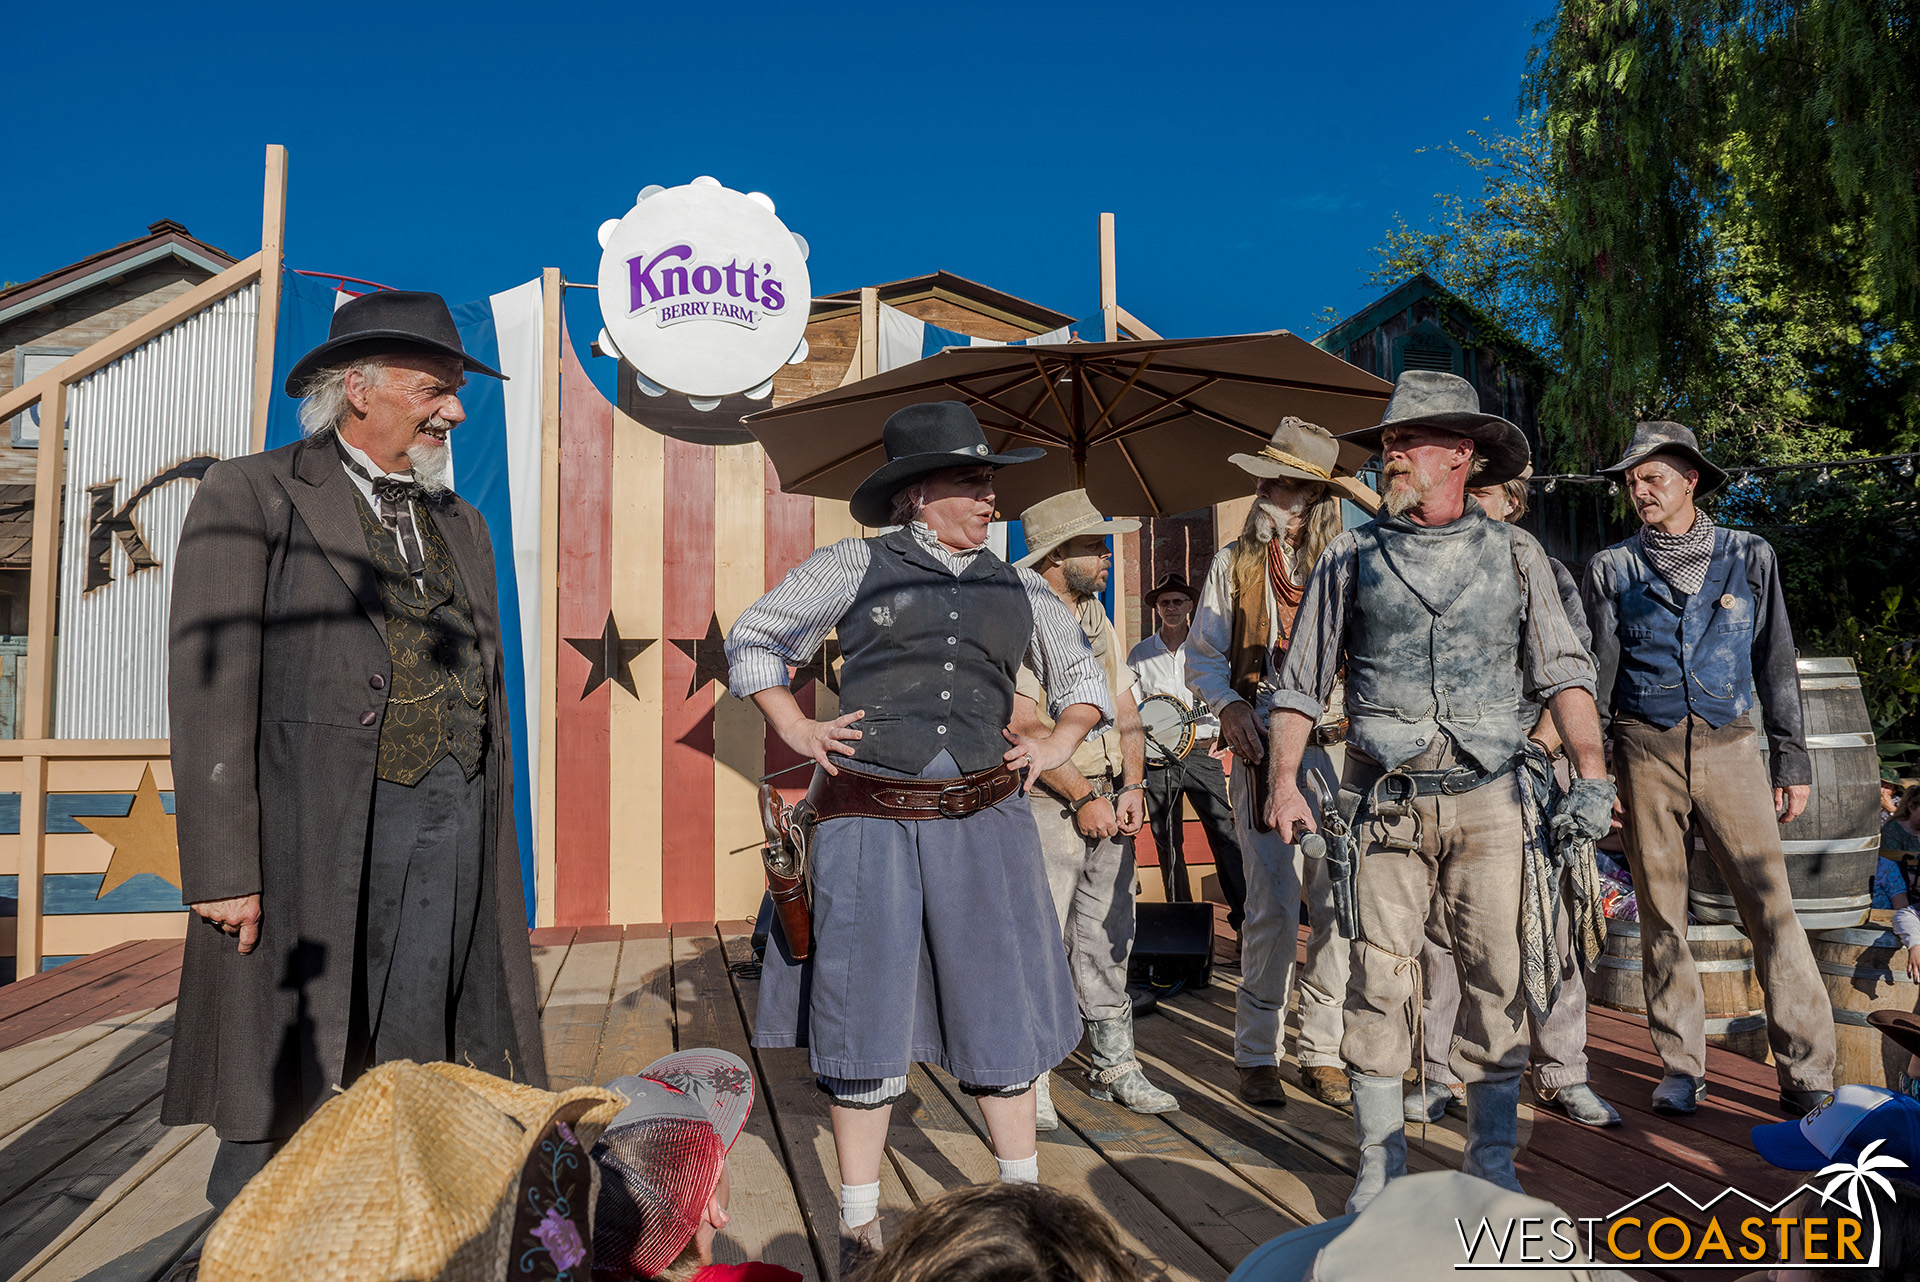 Phyllis rats out her own kin by announcing that she had caught Clay and the gang trying to take the chest of valuables out of town.  Of course, Clay did promise to rob Calico himself after returning its valuables.